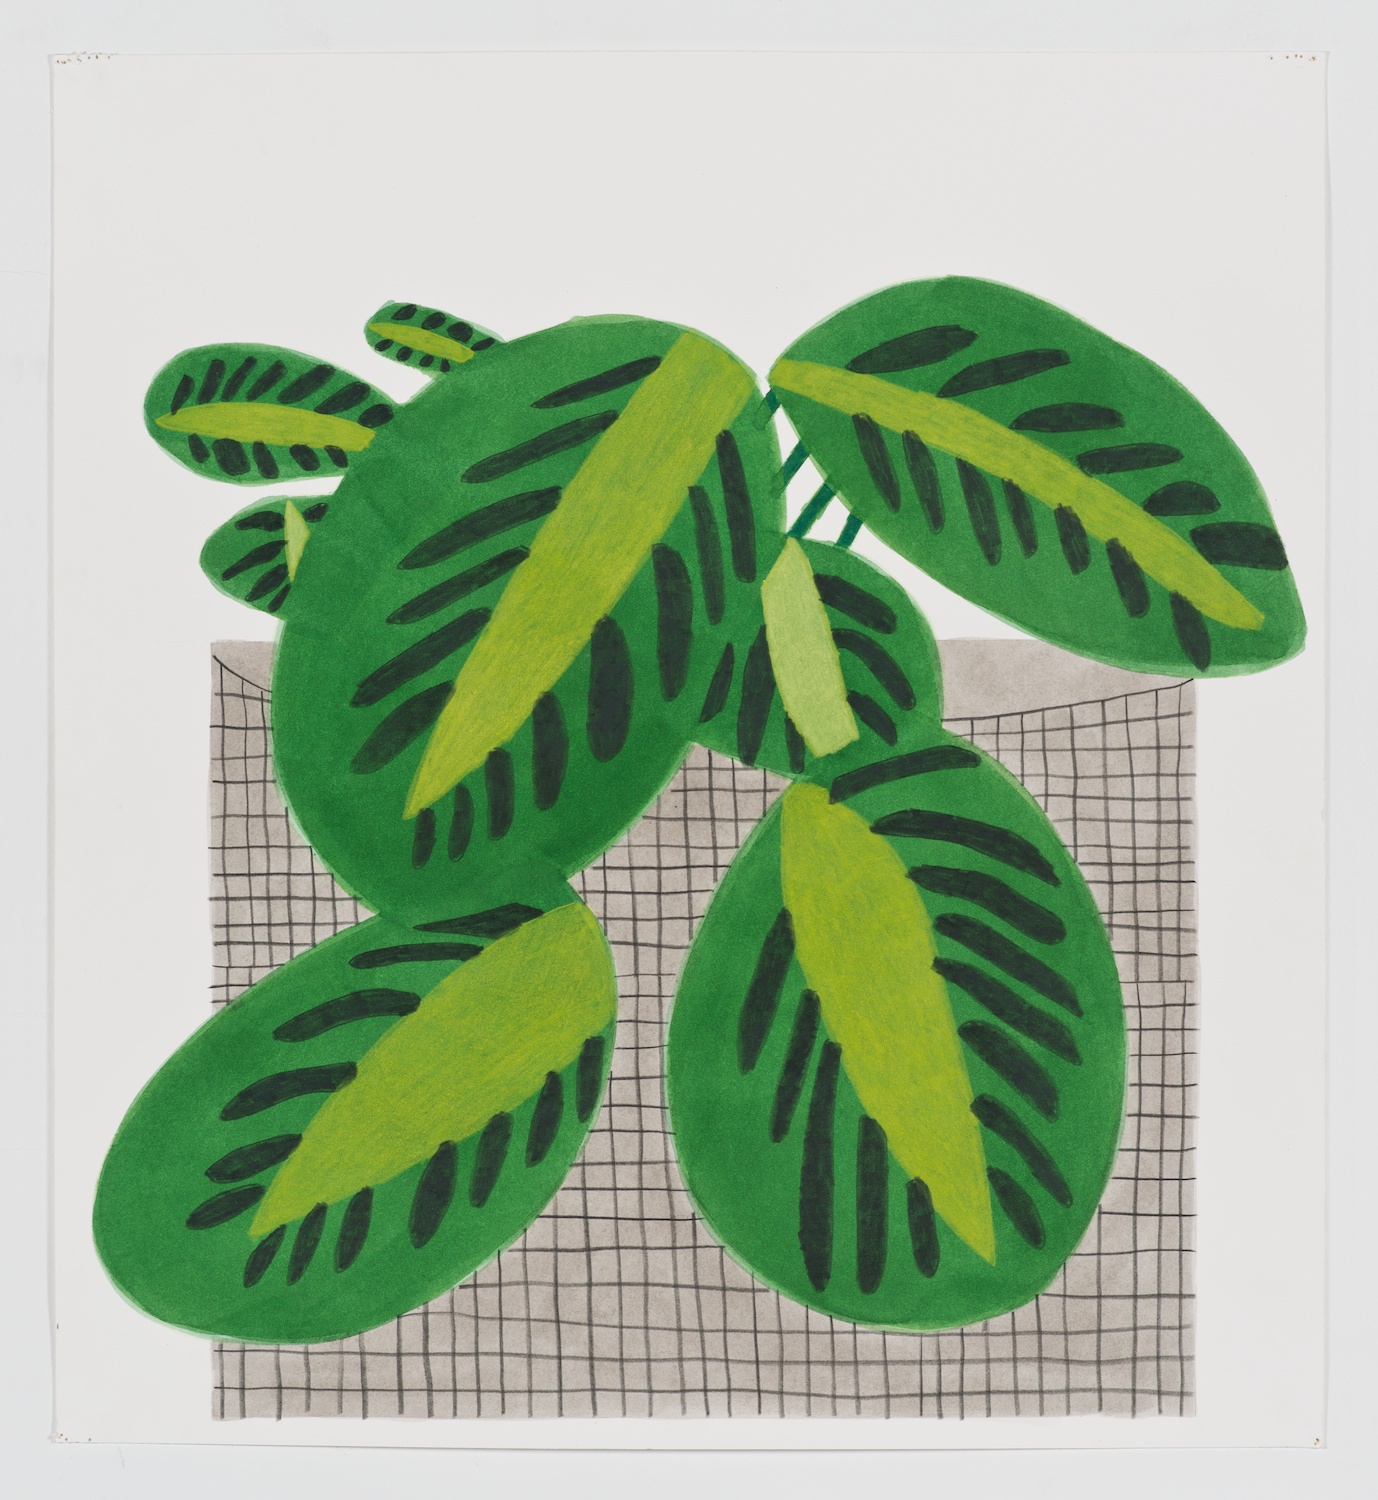 Jonas Wood  Kiwi Plant Clipping with Grid Pot  Gouache and colored pencil on paper 19 ¾h x 18w in JW171